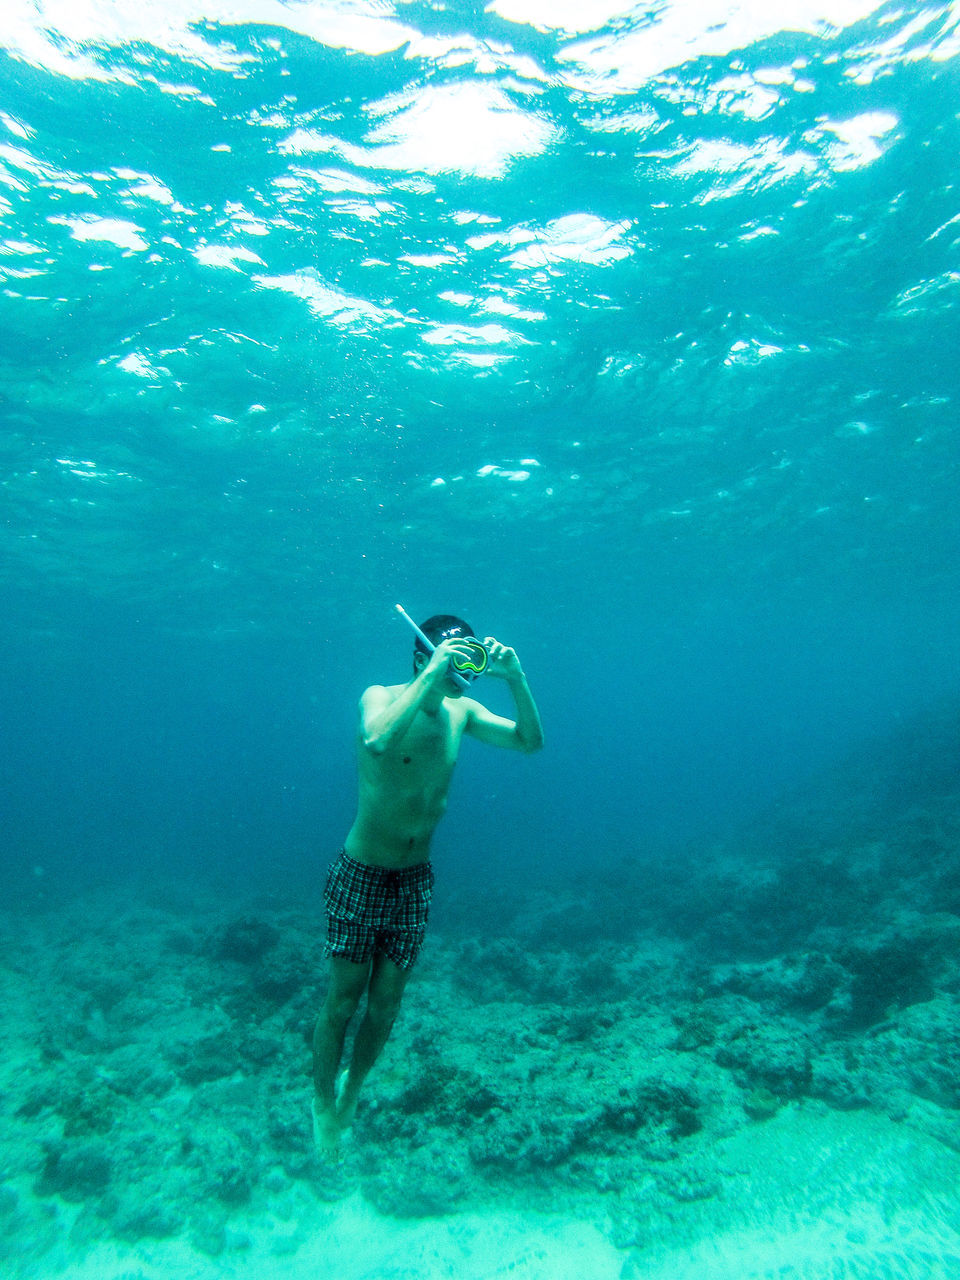 underwater, real people, undersea, one person, adventure, sea, full length, shirtless, lifestyles, swimming, leisure activity, exploration, water, day, nature, scuba diving, sea life, beauty in nature, young adult, outdoors, animal themes, people